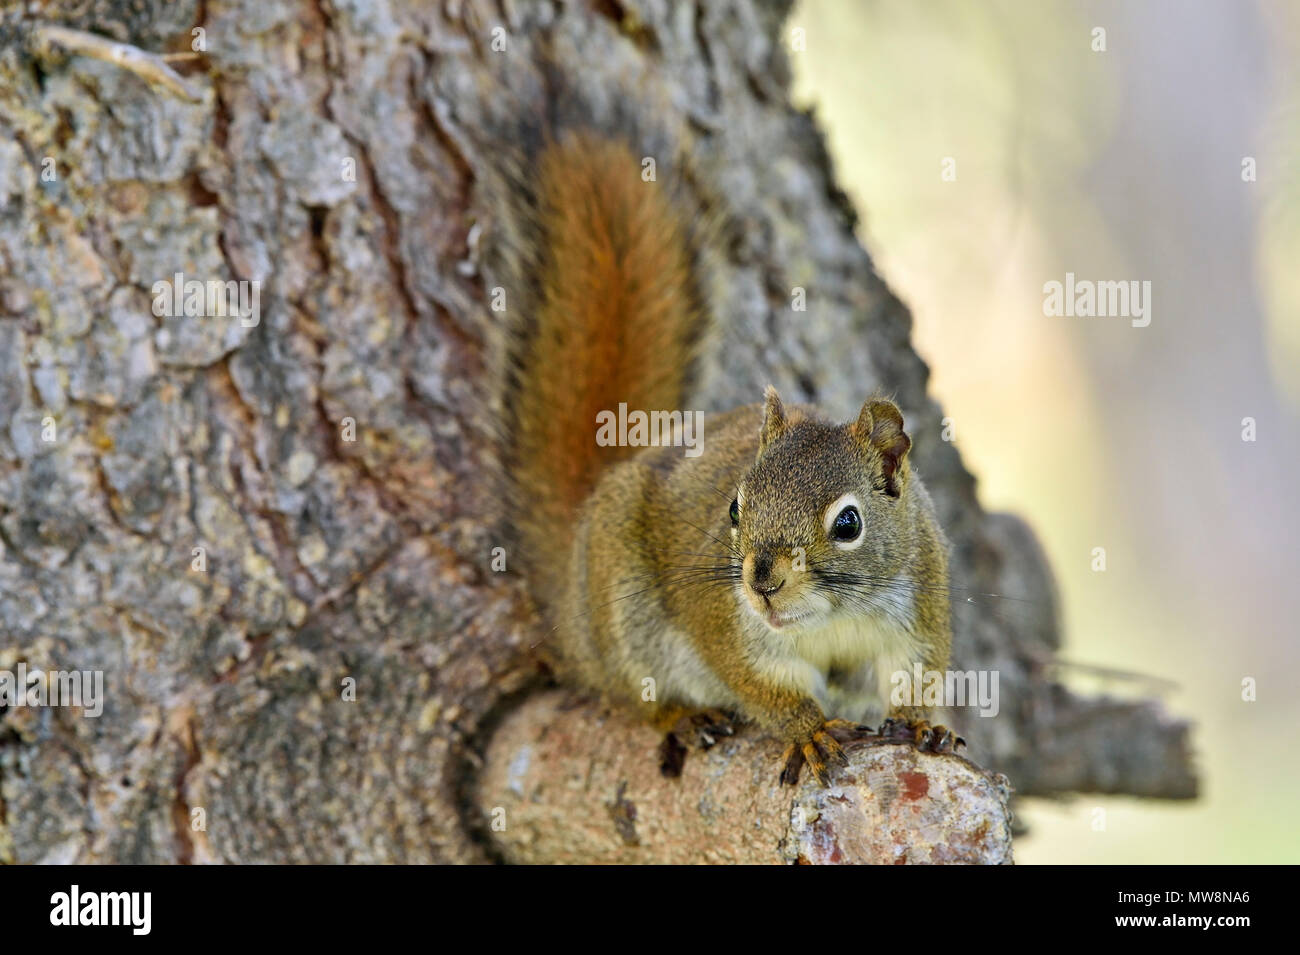 A wild red squirrel 'Tamiasciurus hudsonicus'; perched on branch of a spruce tree in rural Alberta Canada - Stock Image